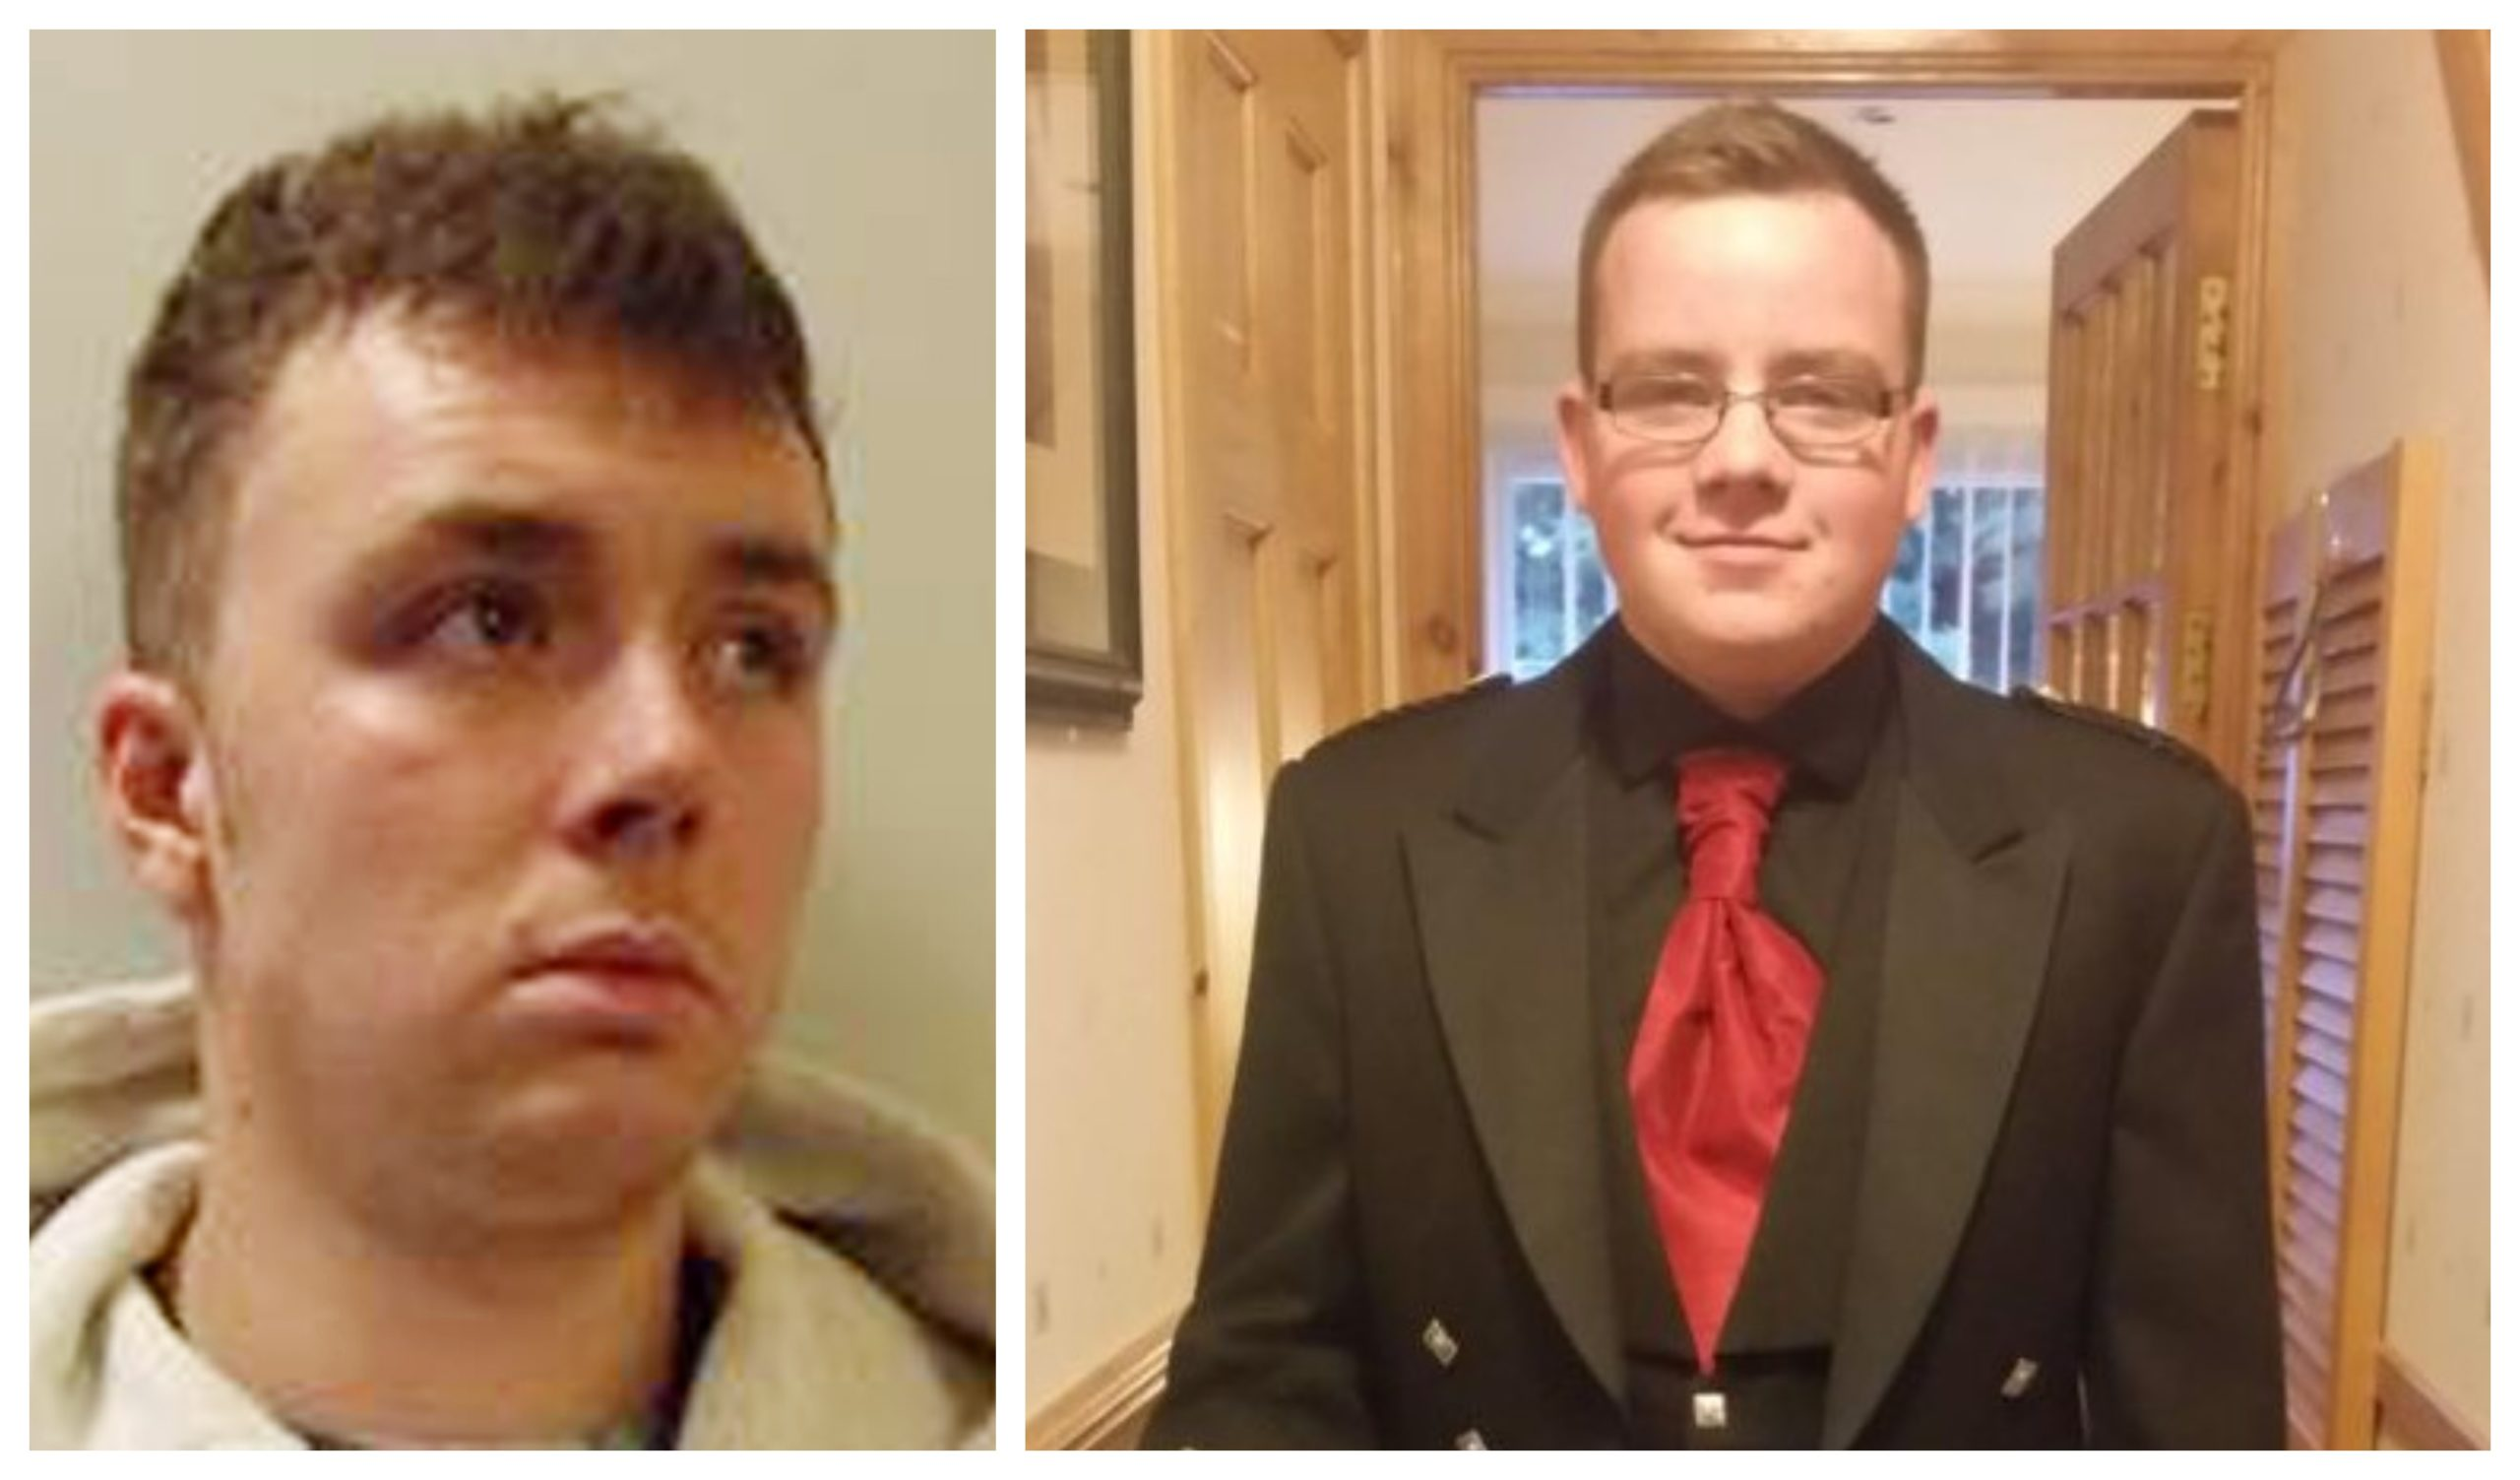 Mikey Durdle (left) admitted to dangerous driving that caused Kyle Robertson's (right) death.